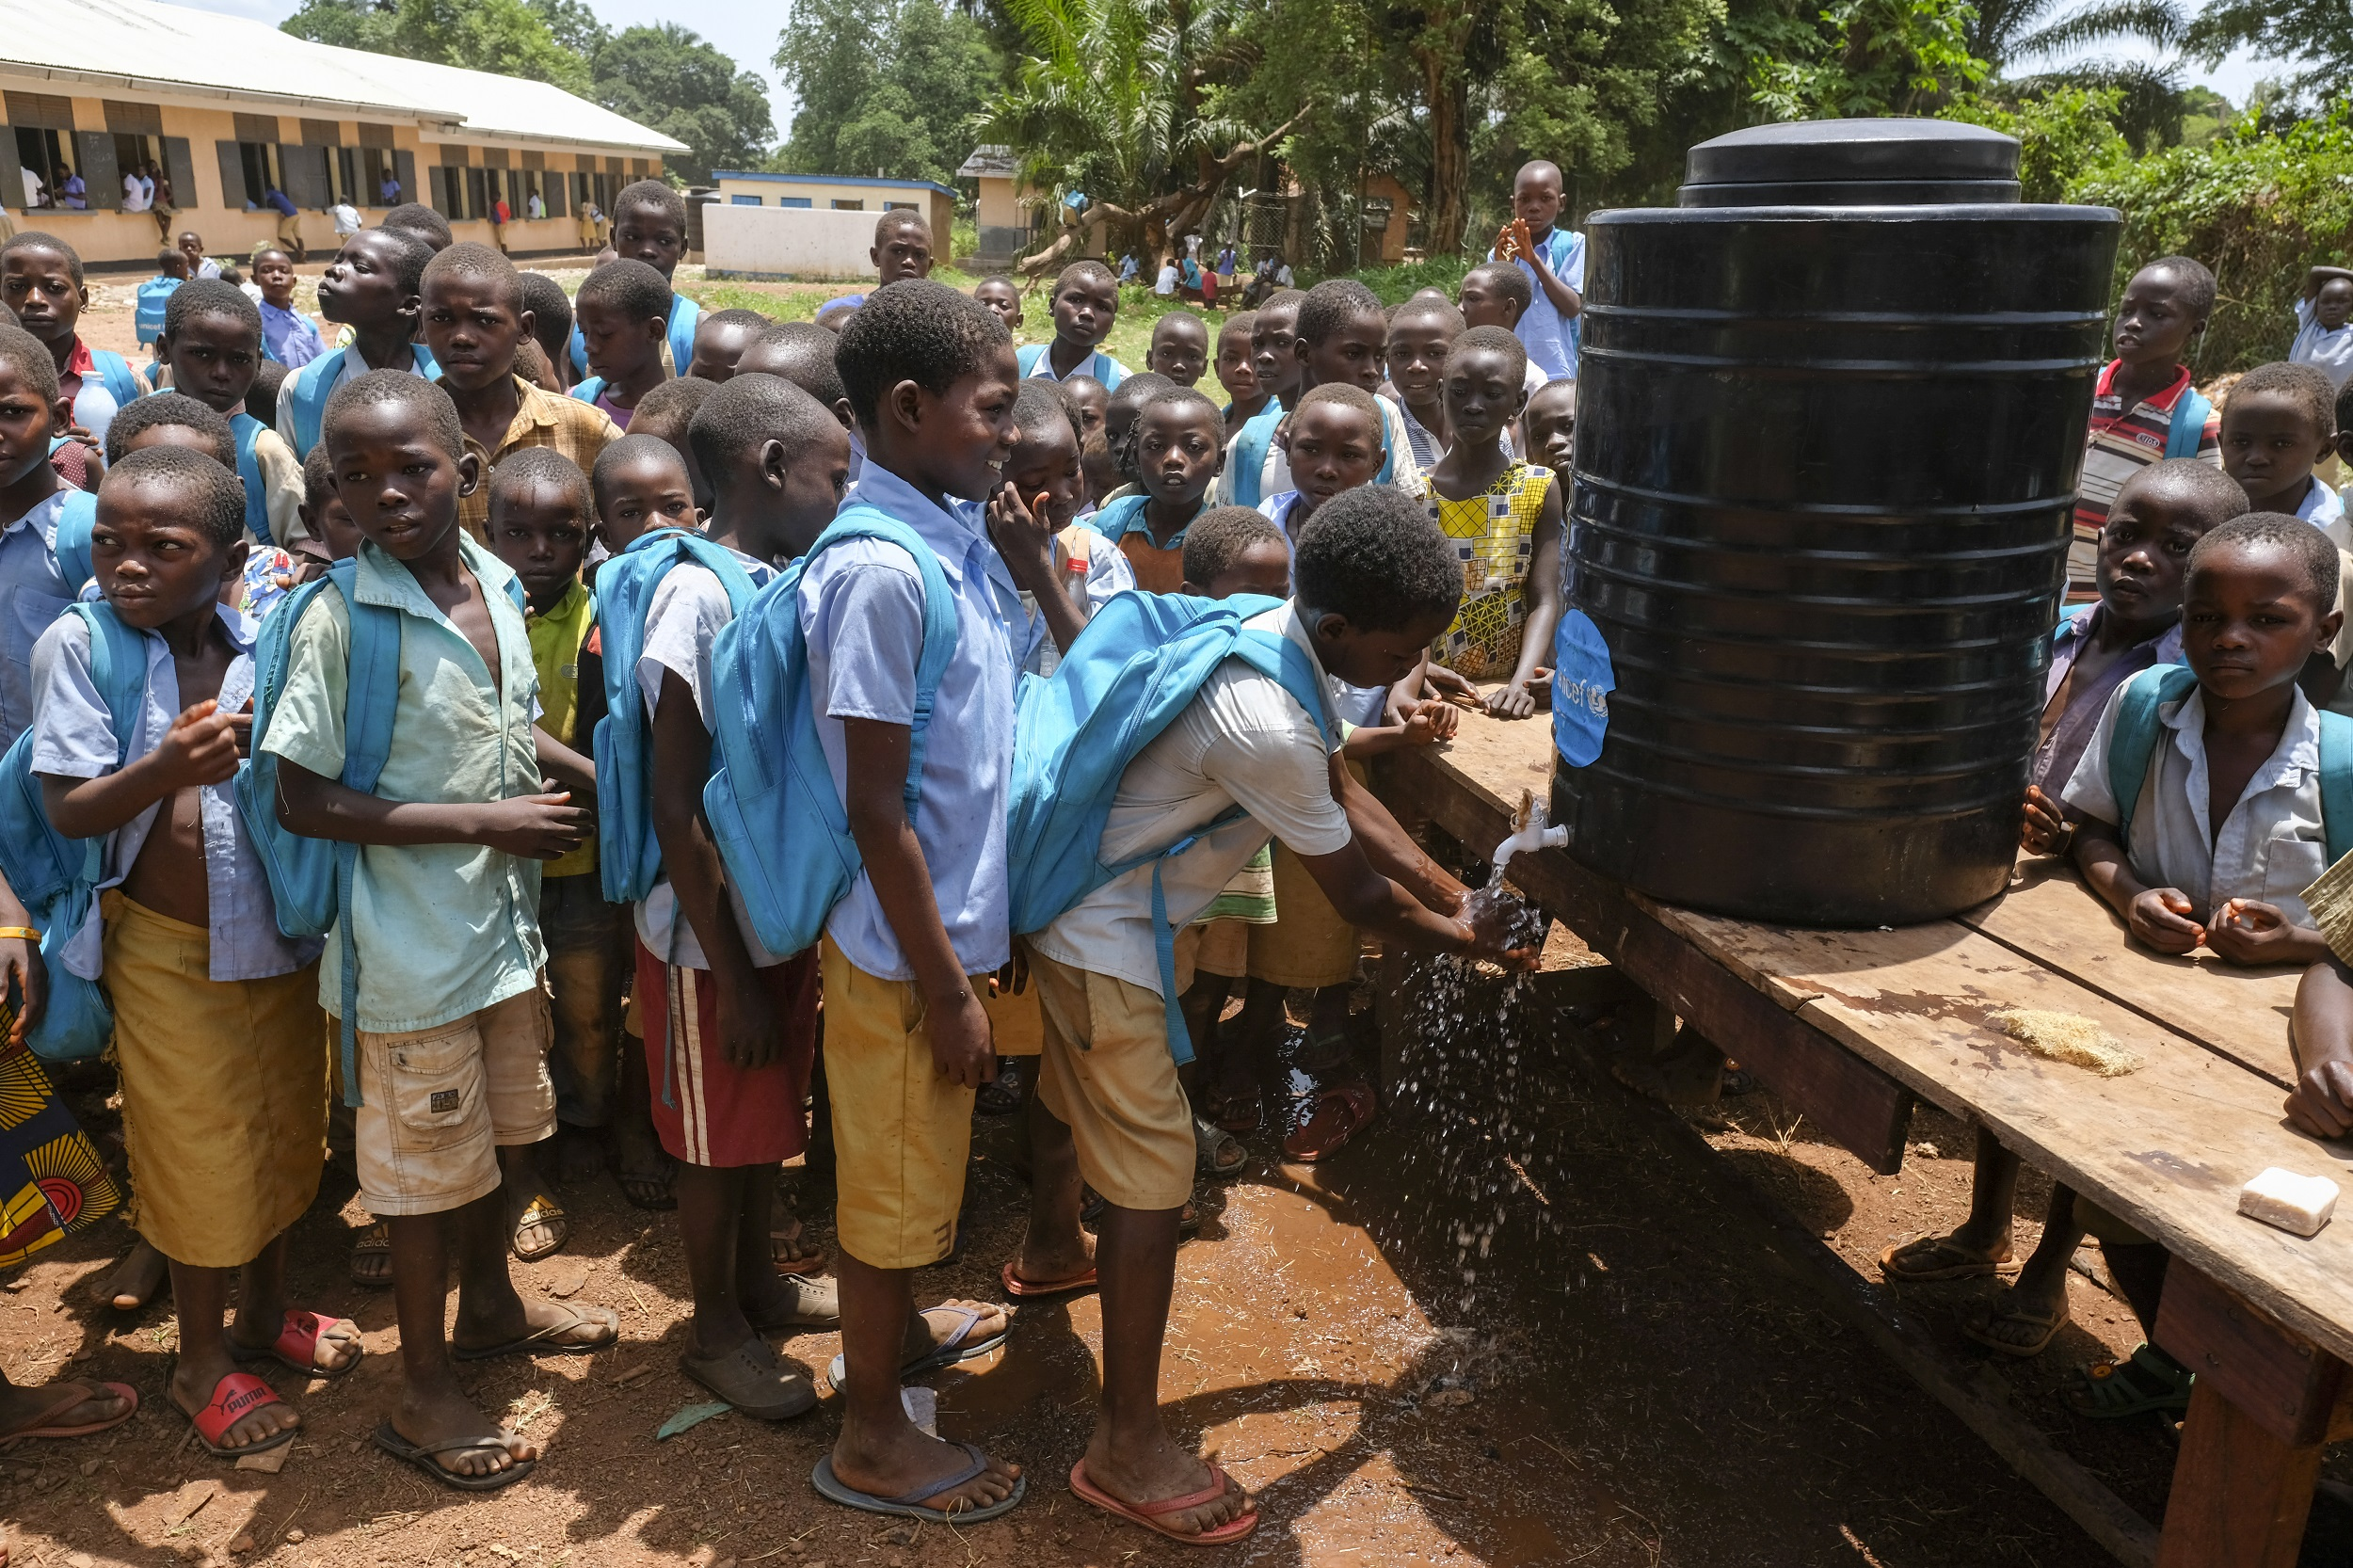 School children line behind one another. The child at the head of the line washes his hands at a tap attached to a large black plastic container.